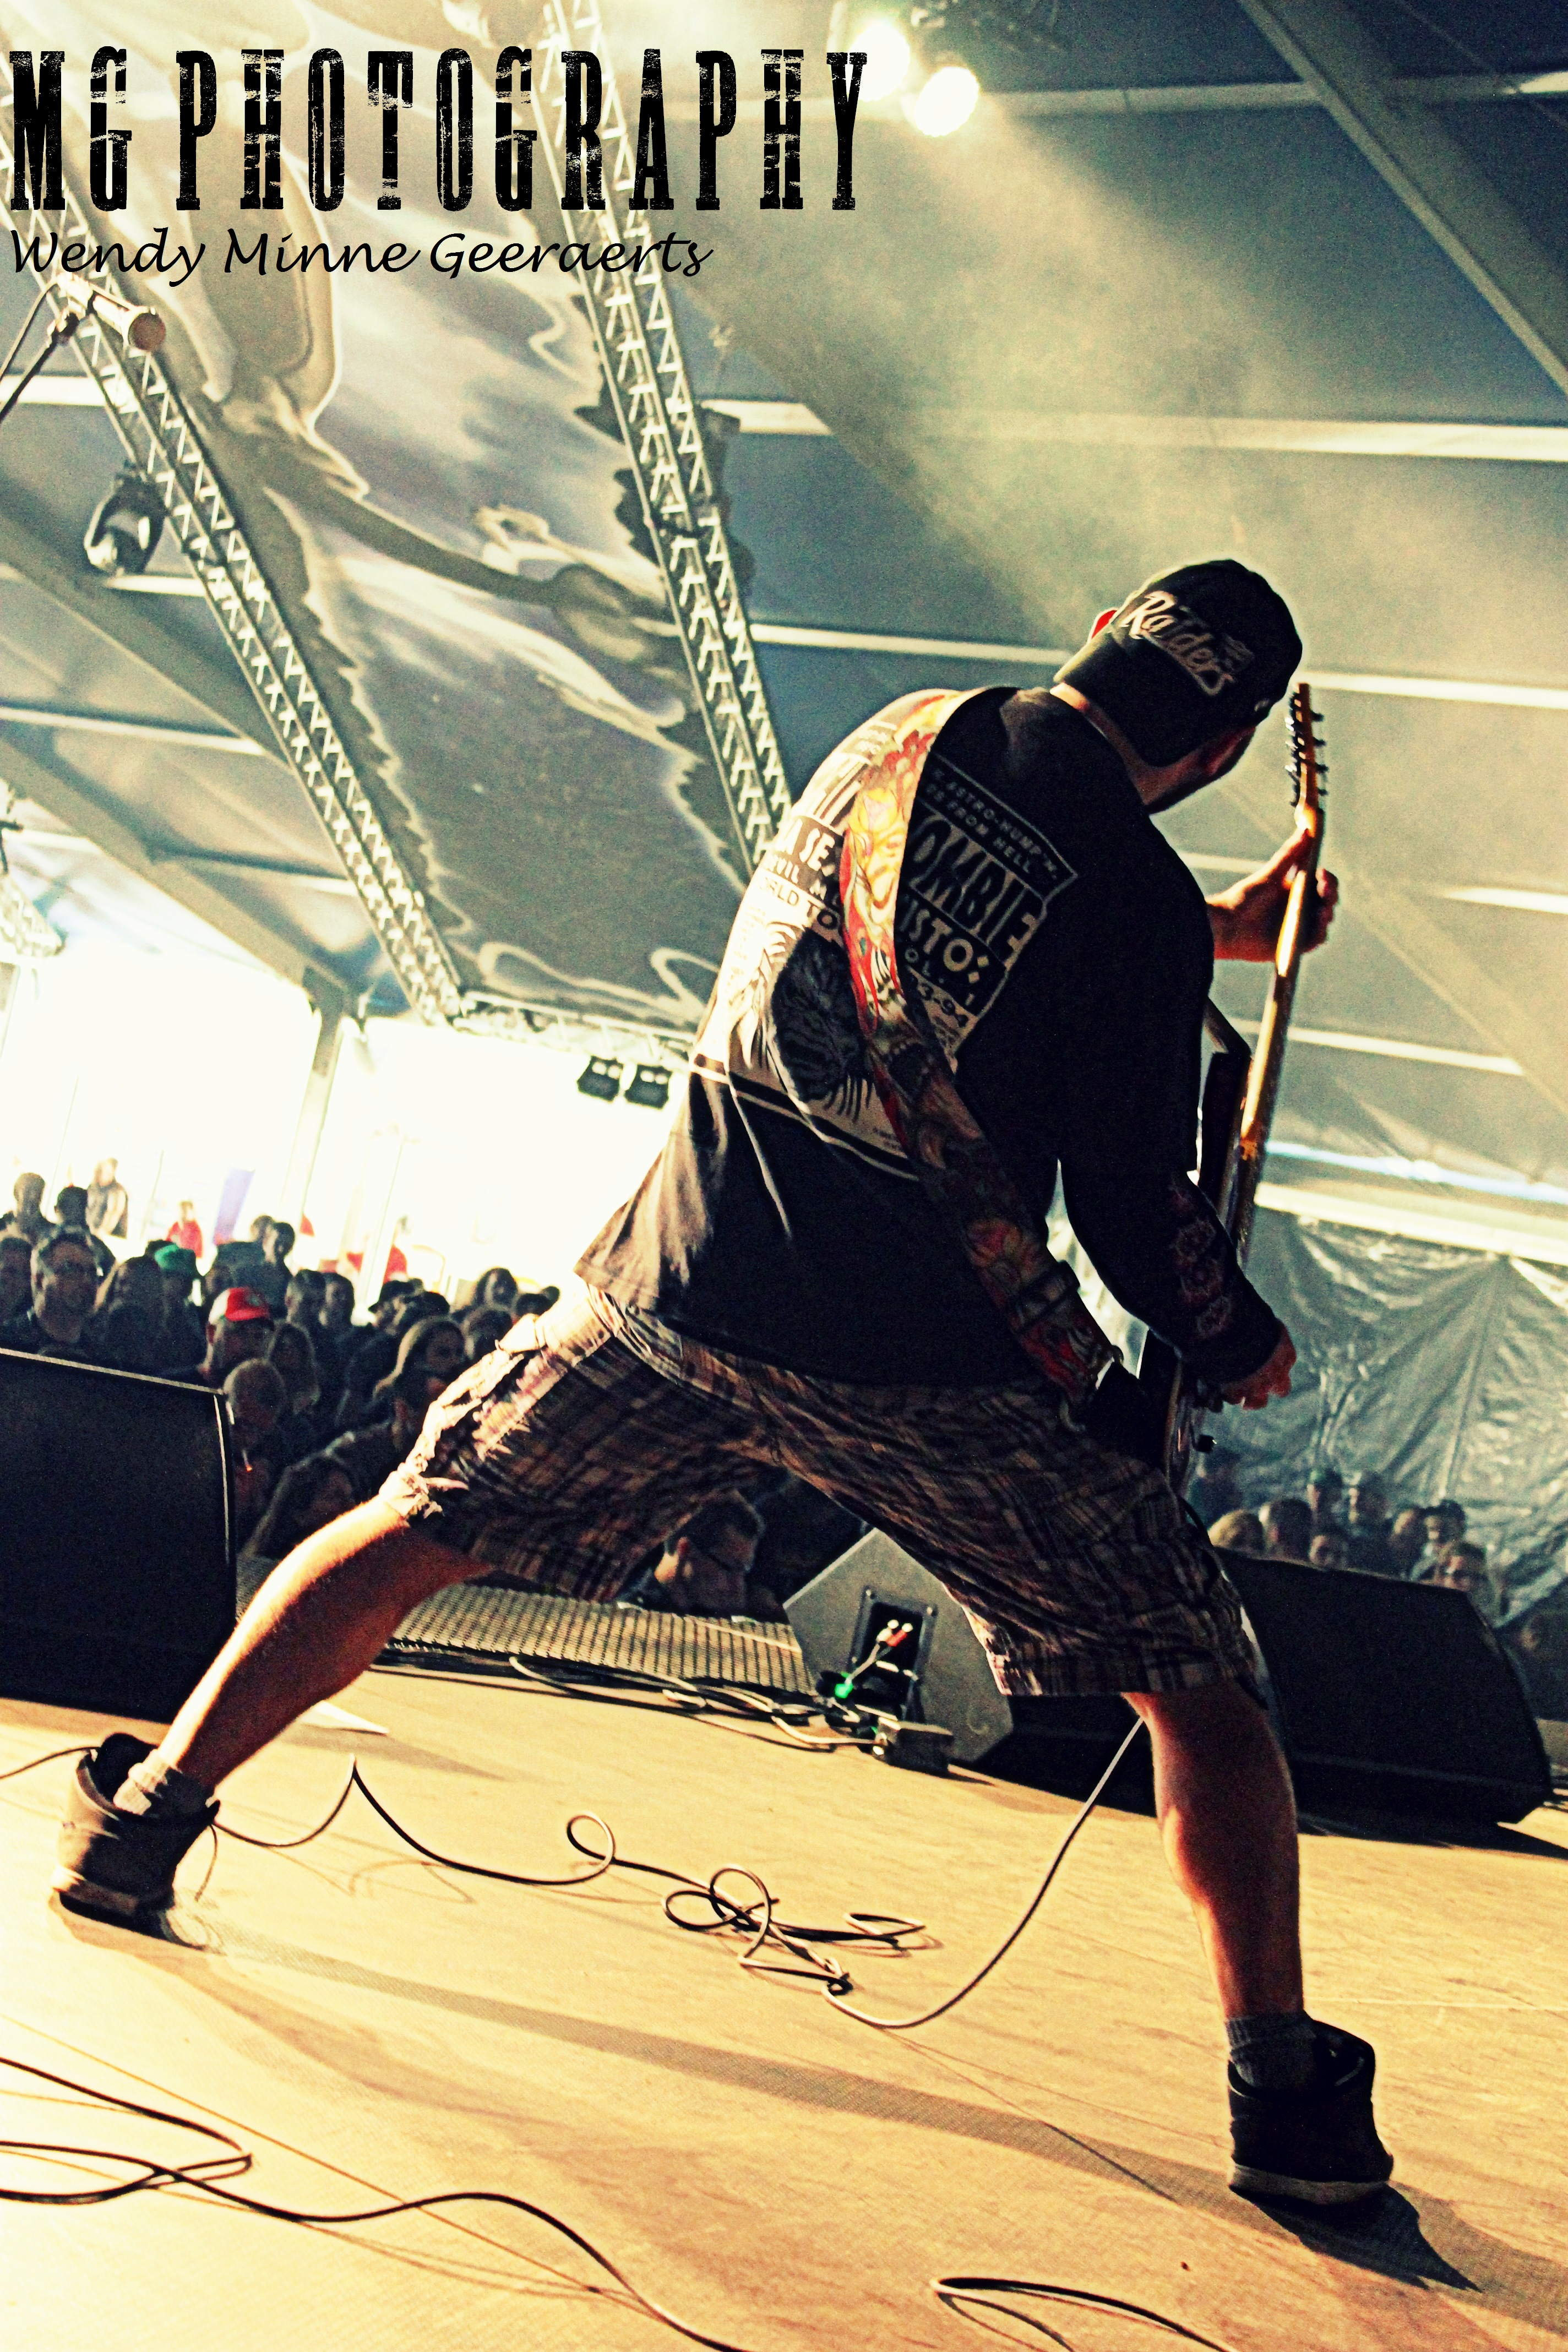 Graspop Metal Meeting 2015